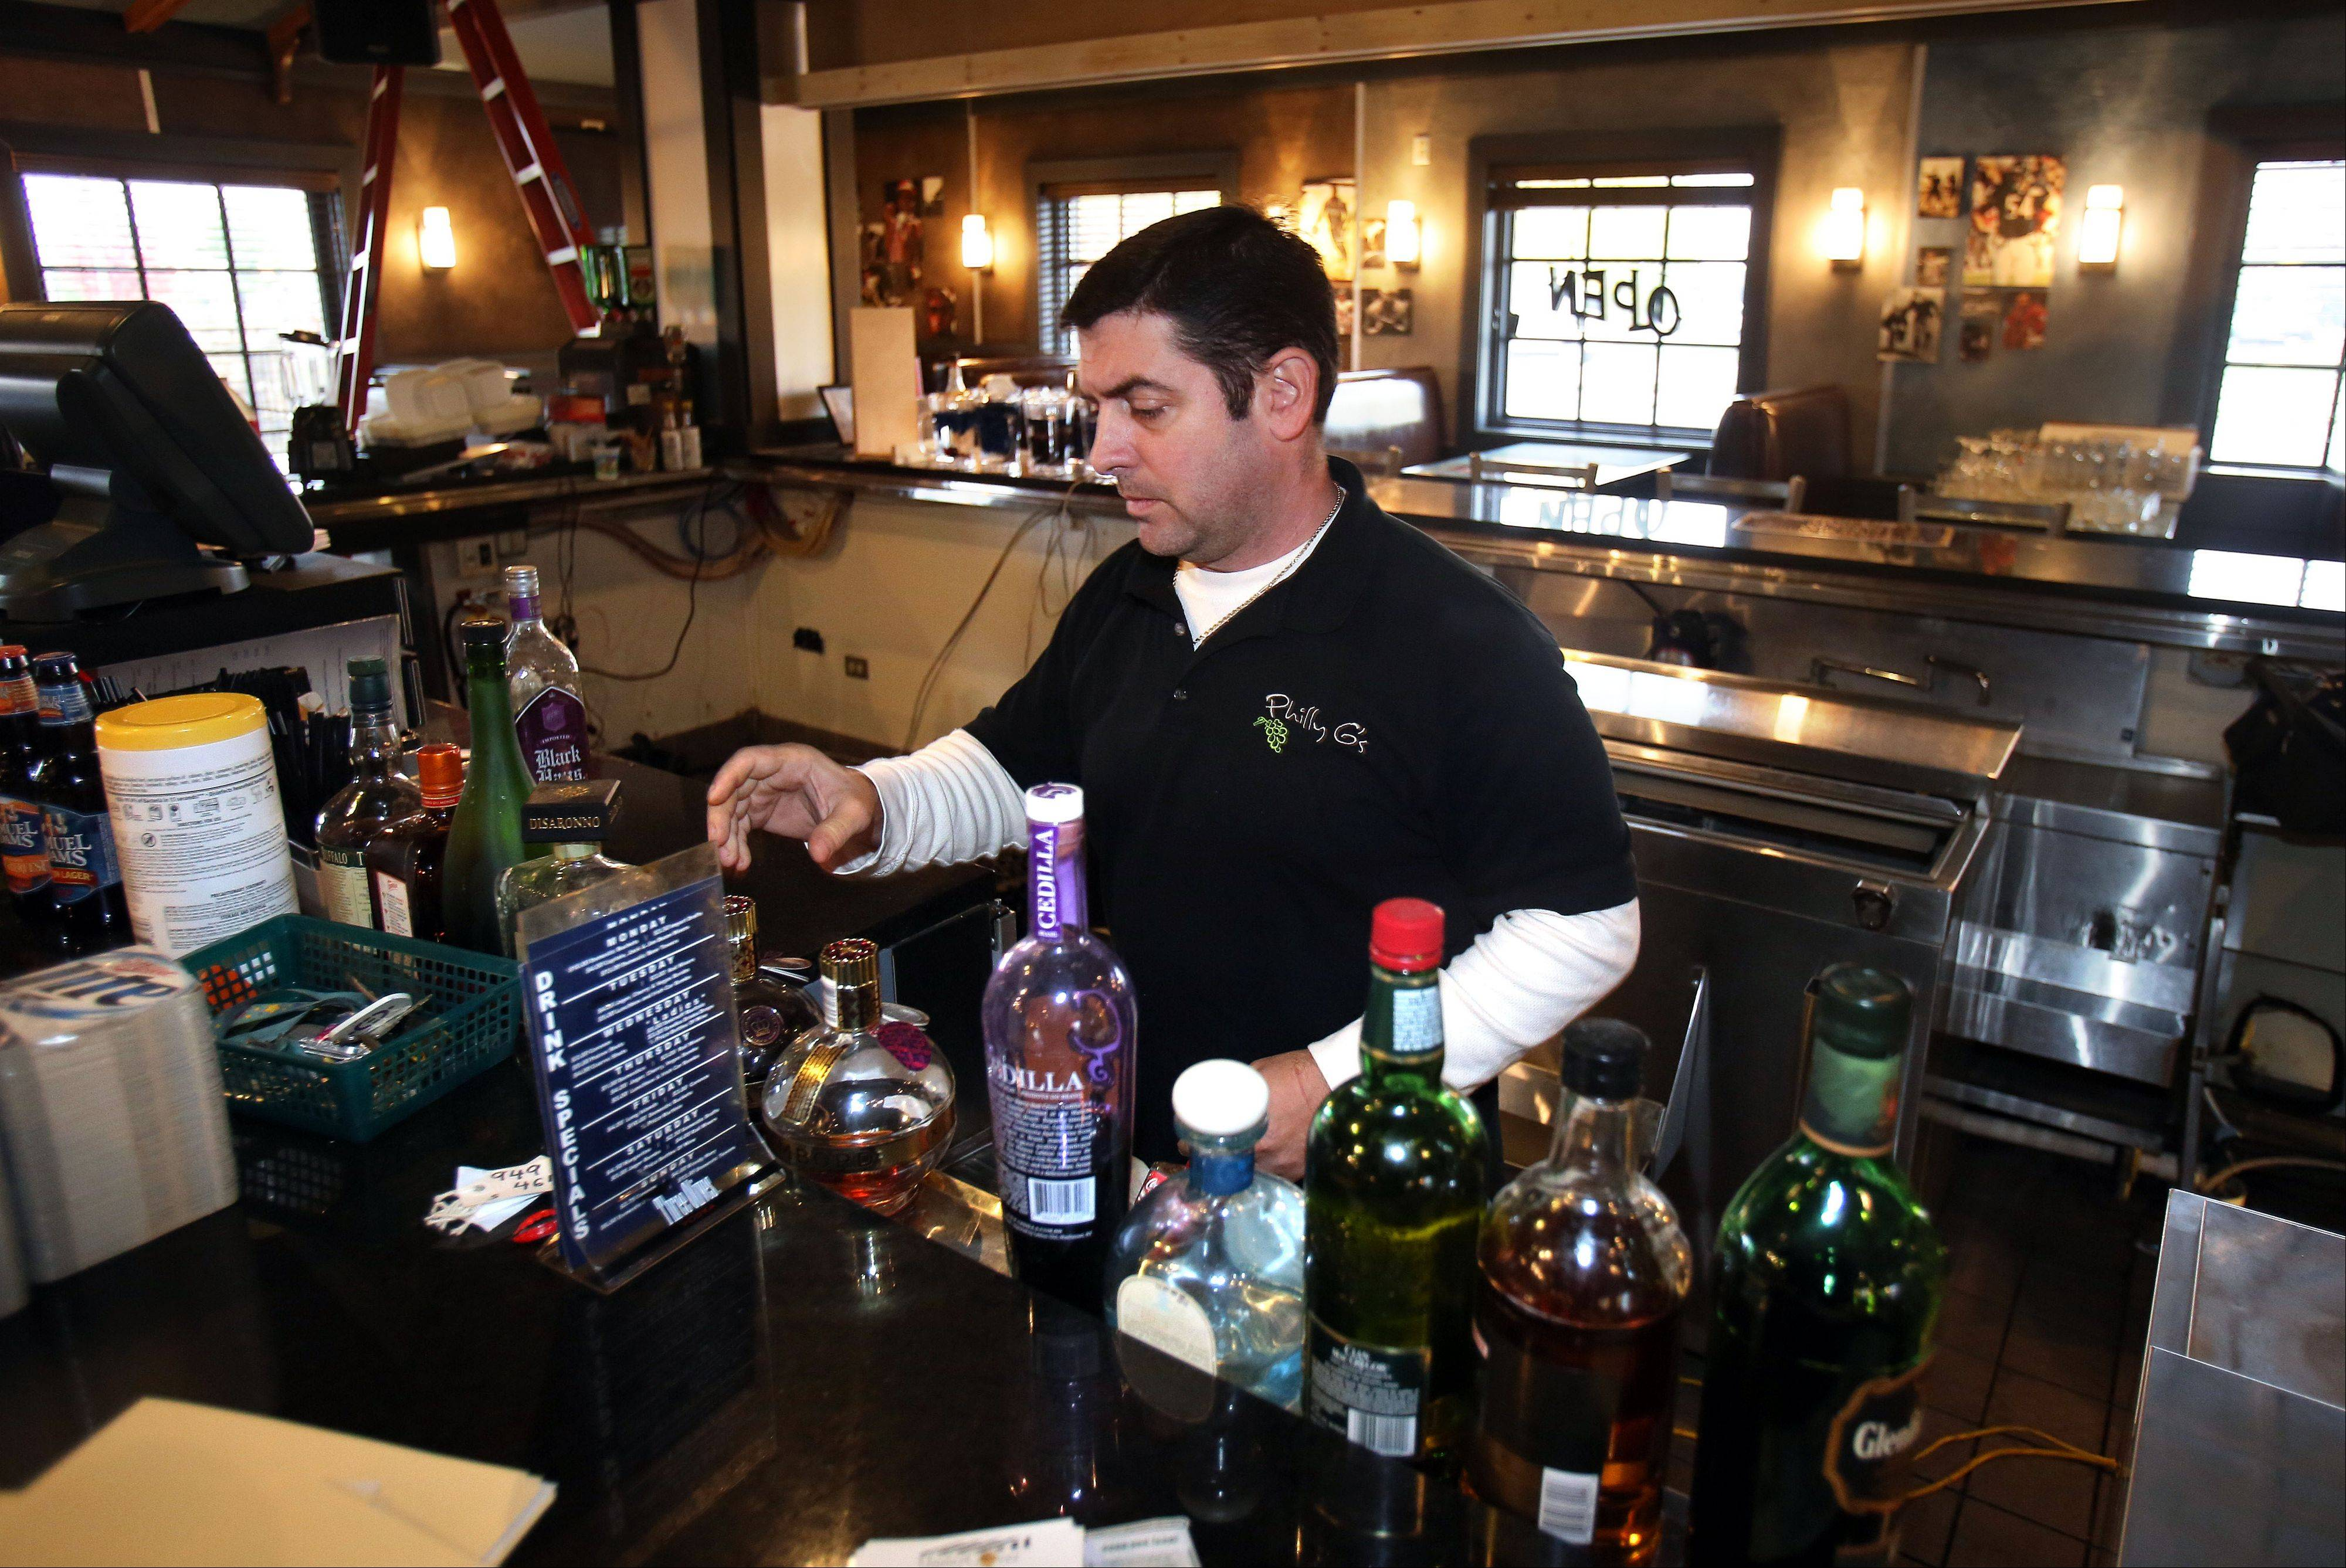 Phil Gilardi sorts through liquor bottles at the former Blue 60 in Mundelein. Gilardi has bought the establishment and will be reopening it as Tavern on 60.